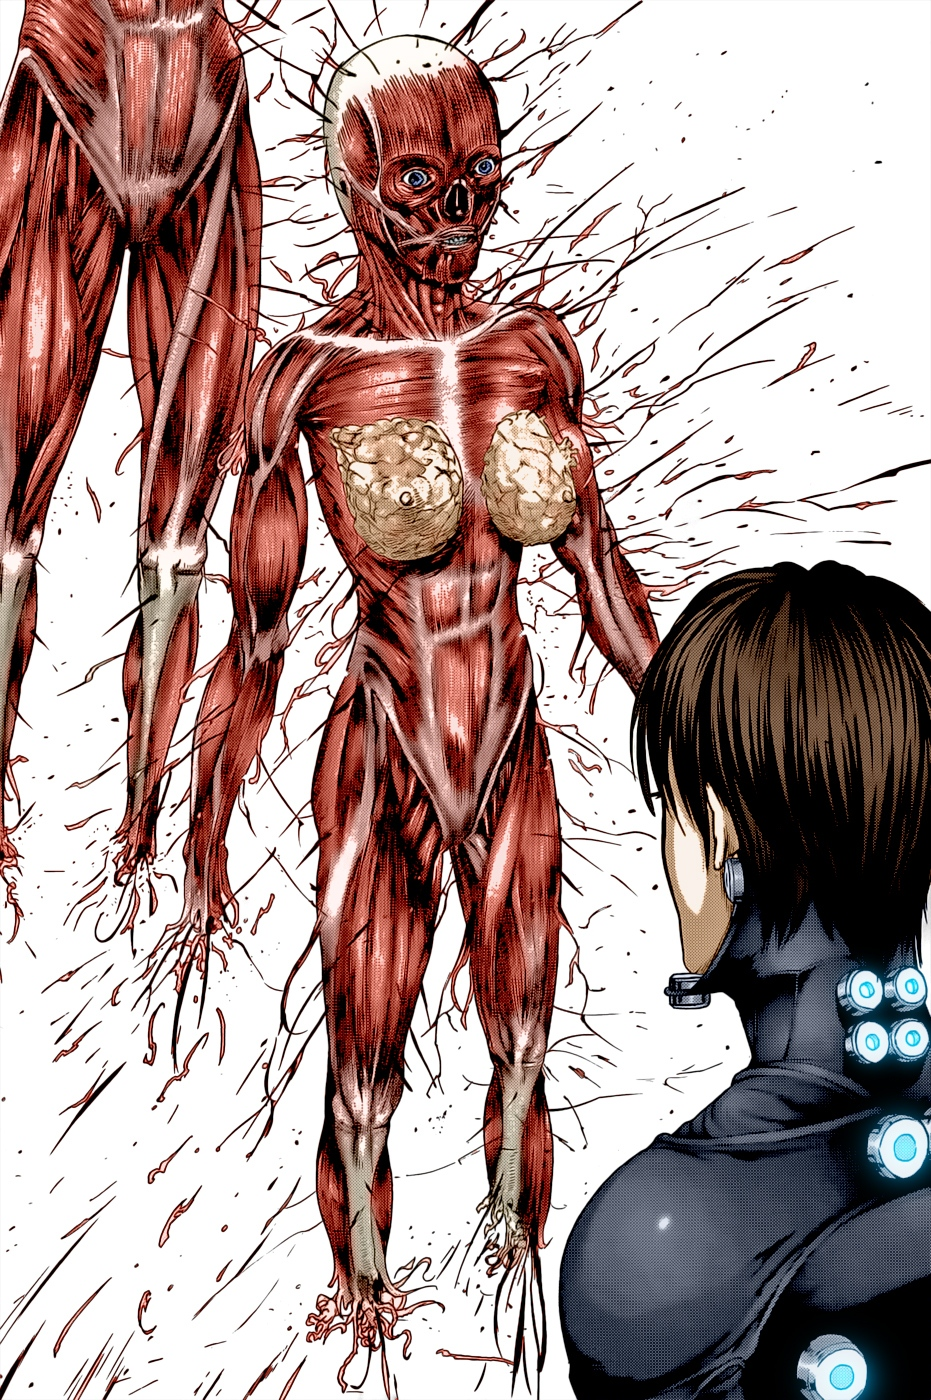 ROL GANZTER - CAPITULO 8 Gantz_370_creating_a_body_1_by_brkheaven-d5fcnb8